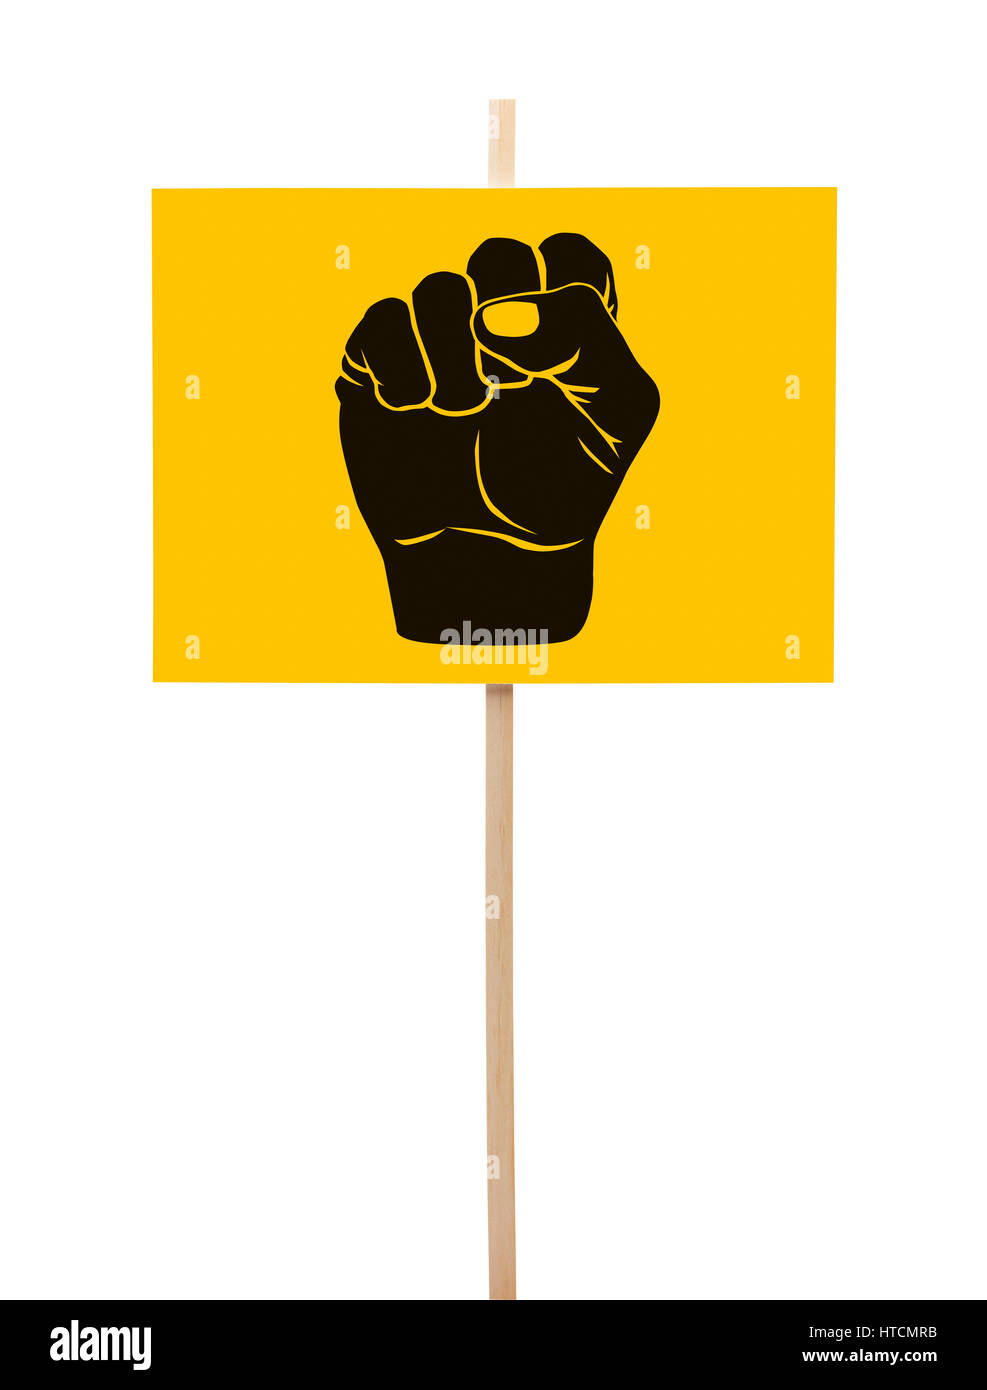 Yellow and Black Protestor Sign with Fist Isolated on White Background. - Stock Image